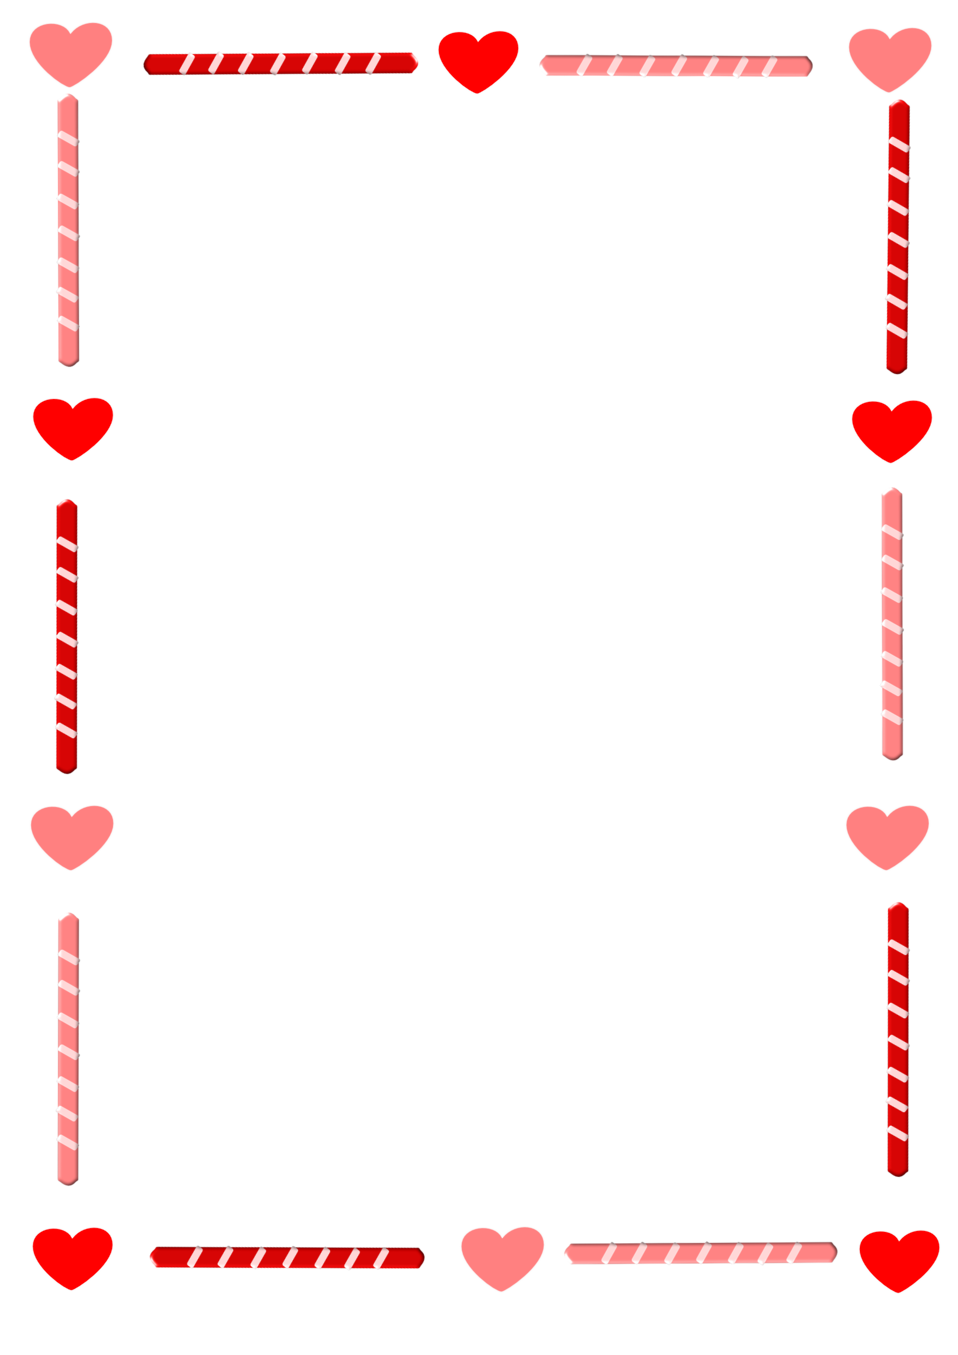 Heart and Candy Border